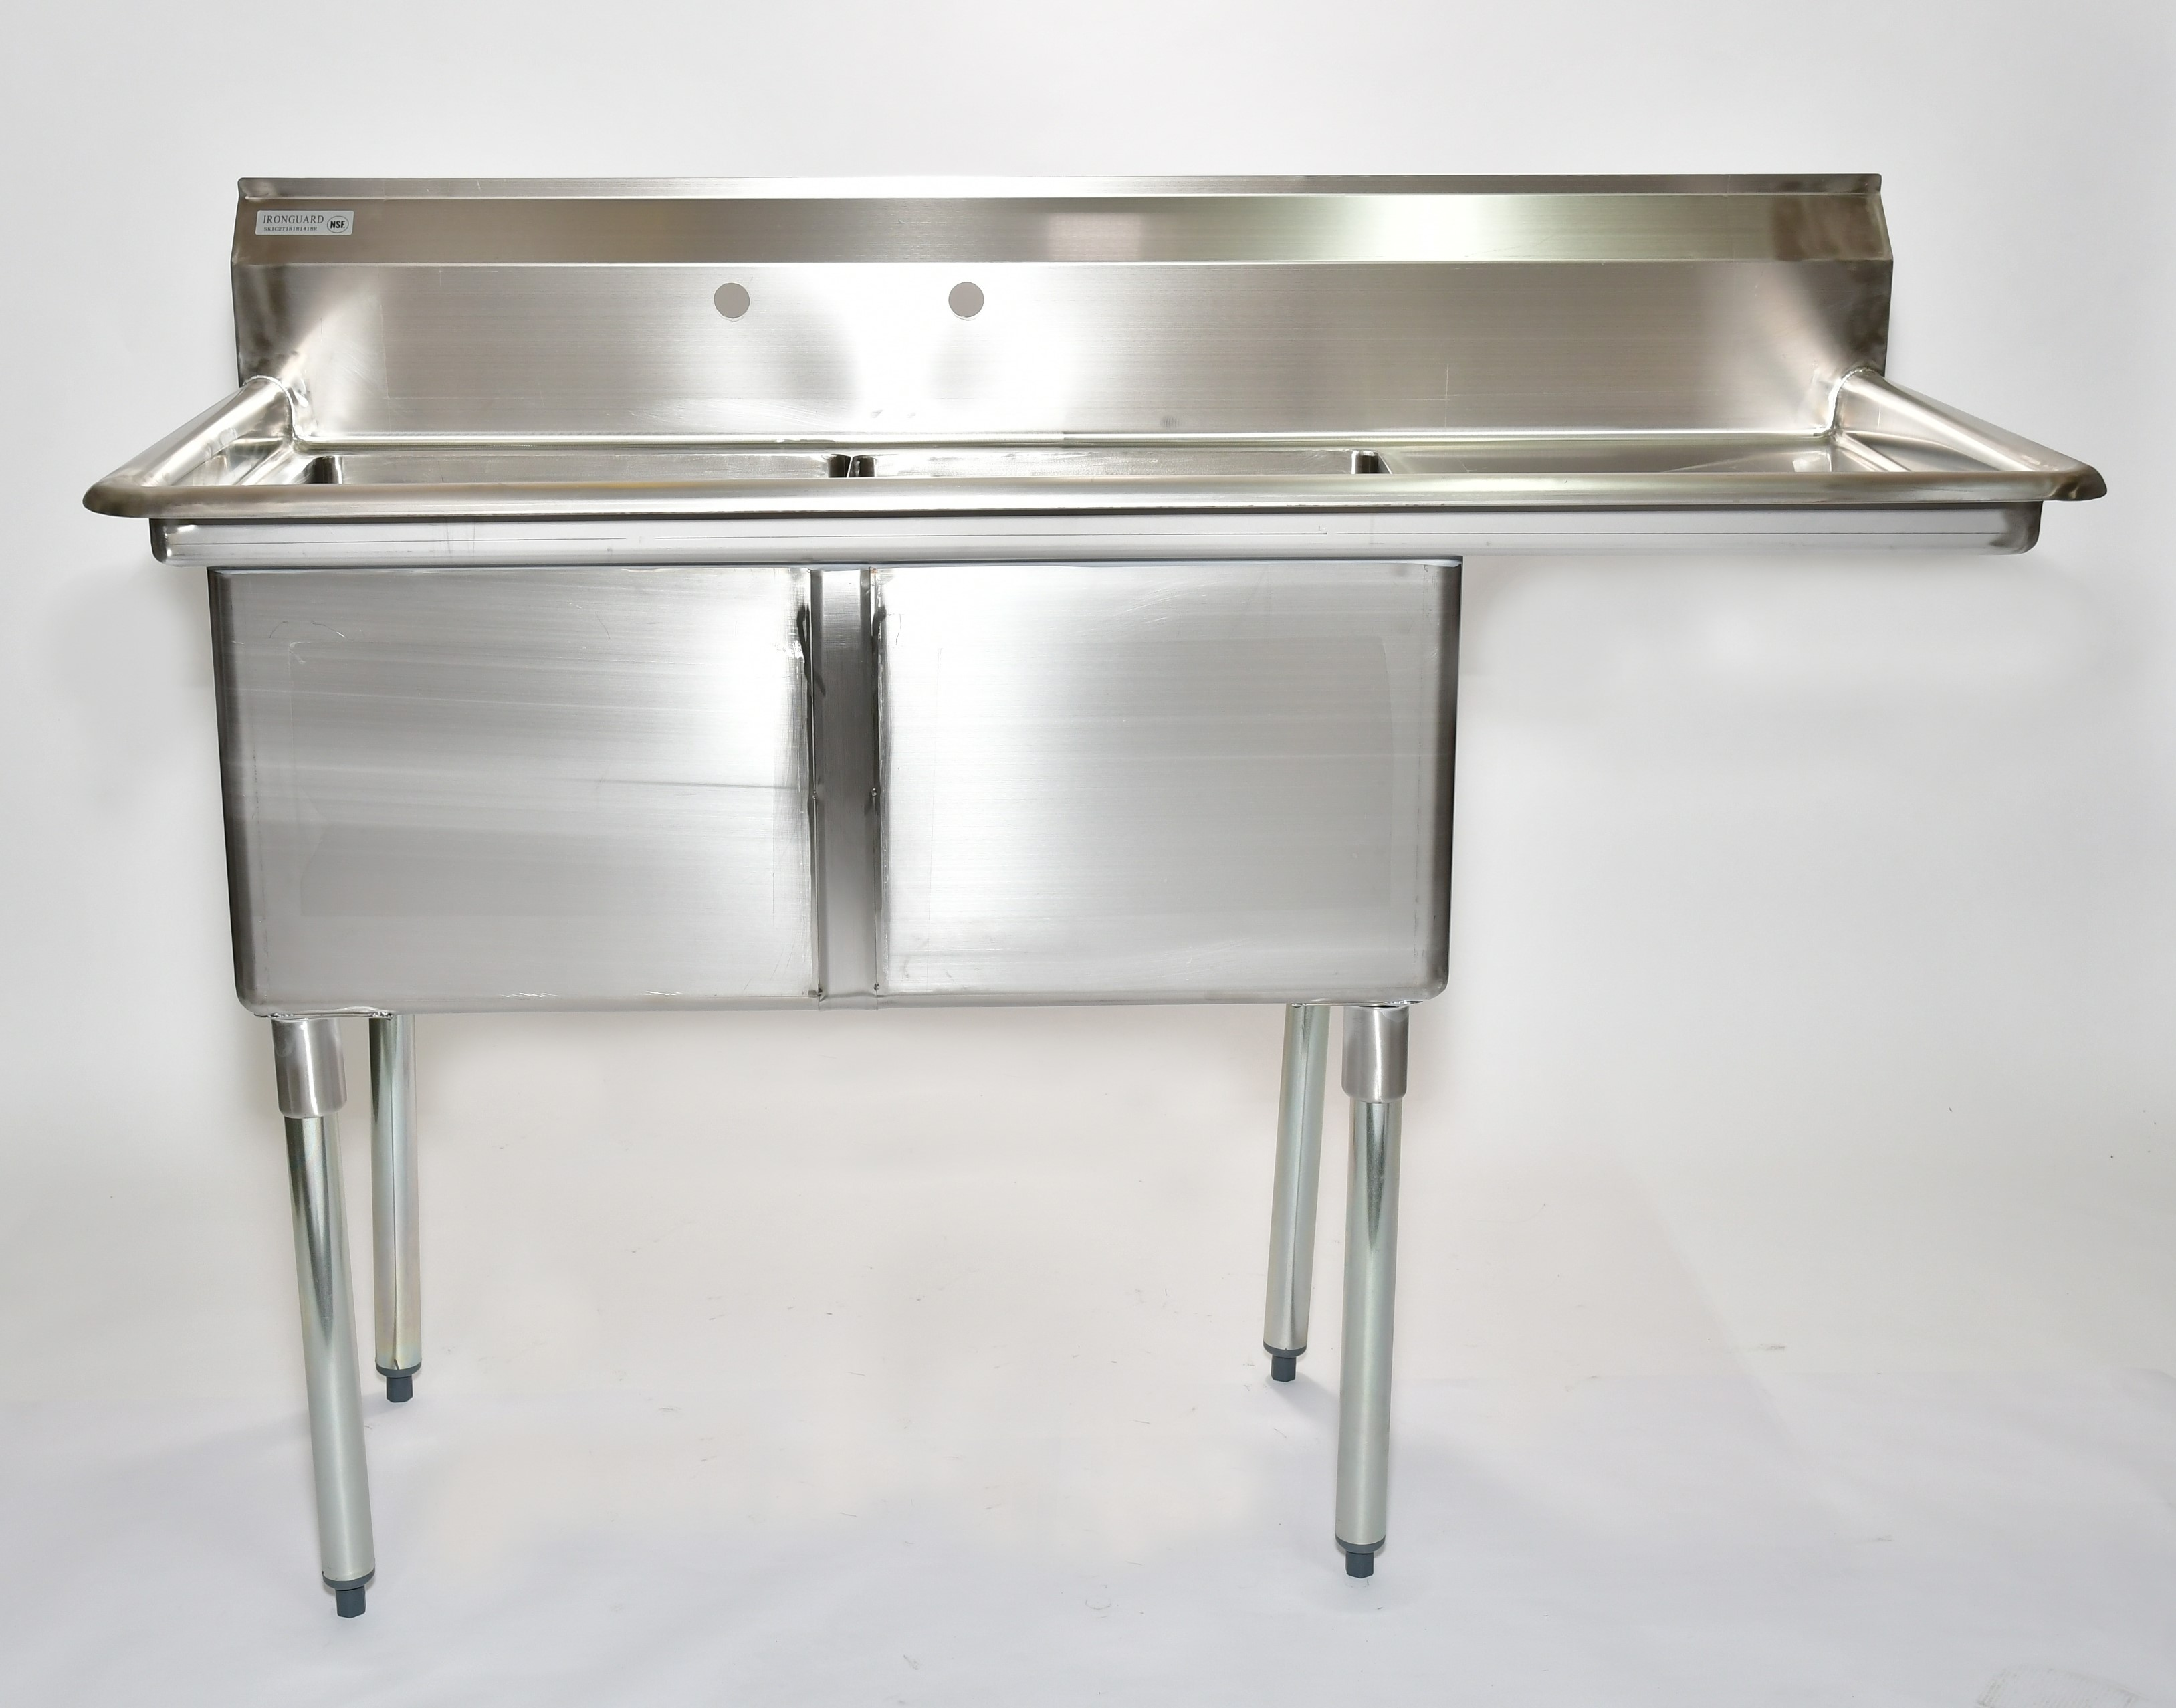 "Iron Guard-Sink 2 Comp  18 X 18 X 14 with 18"" Right Drainboard 304 Top Galv Legs (SKIC2T18181418R) 